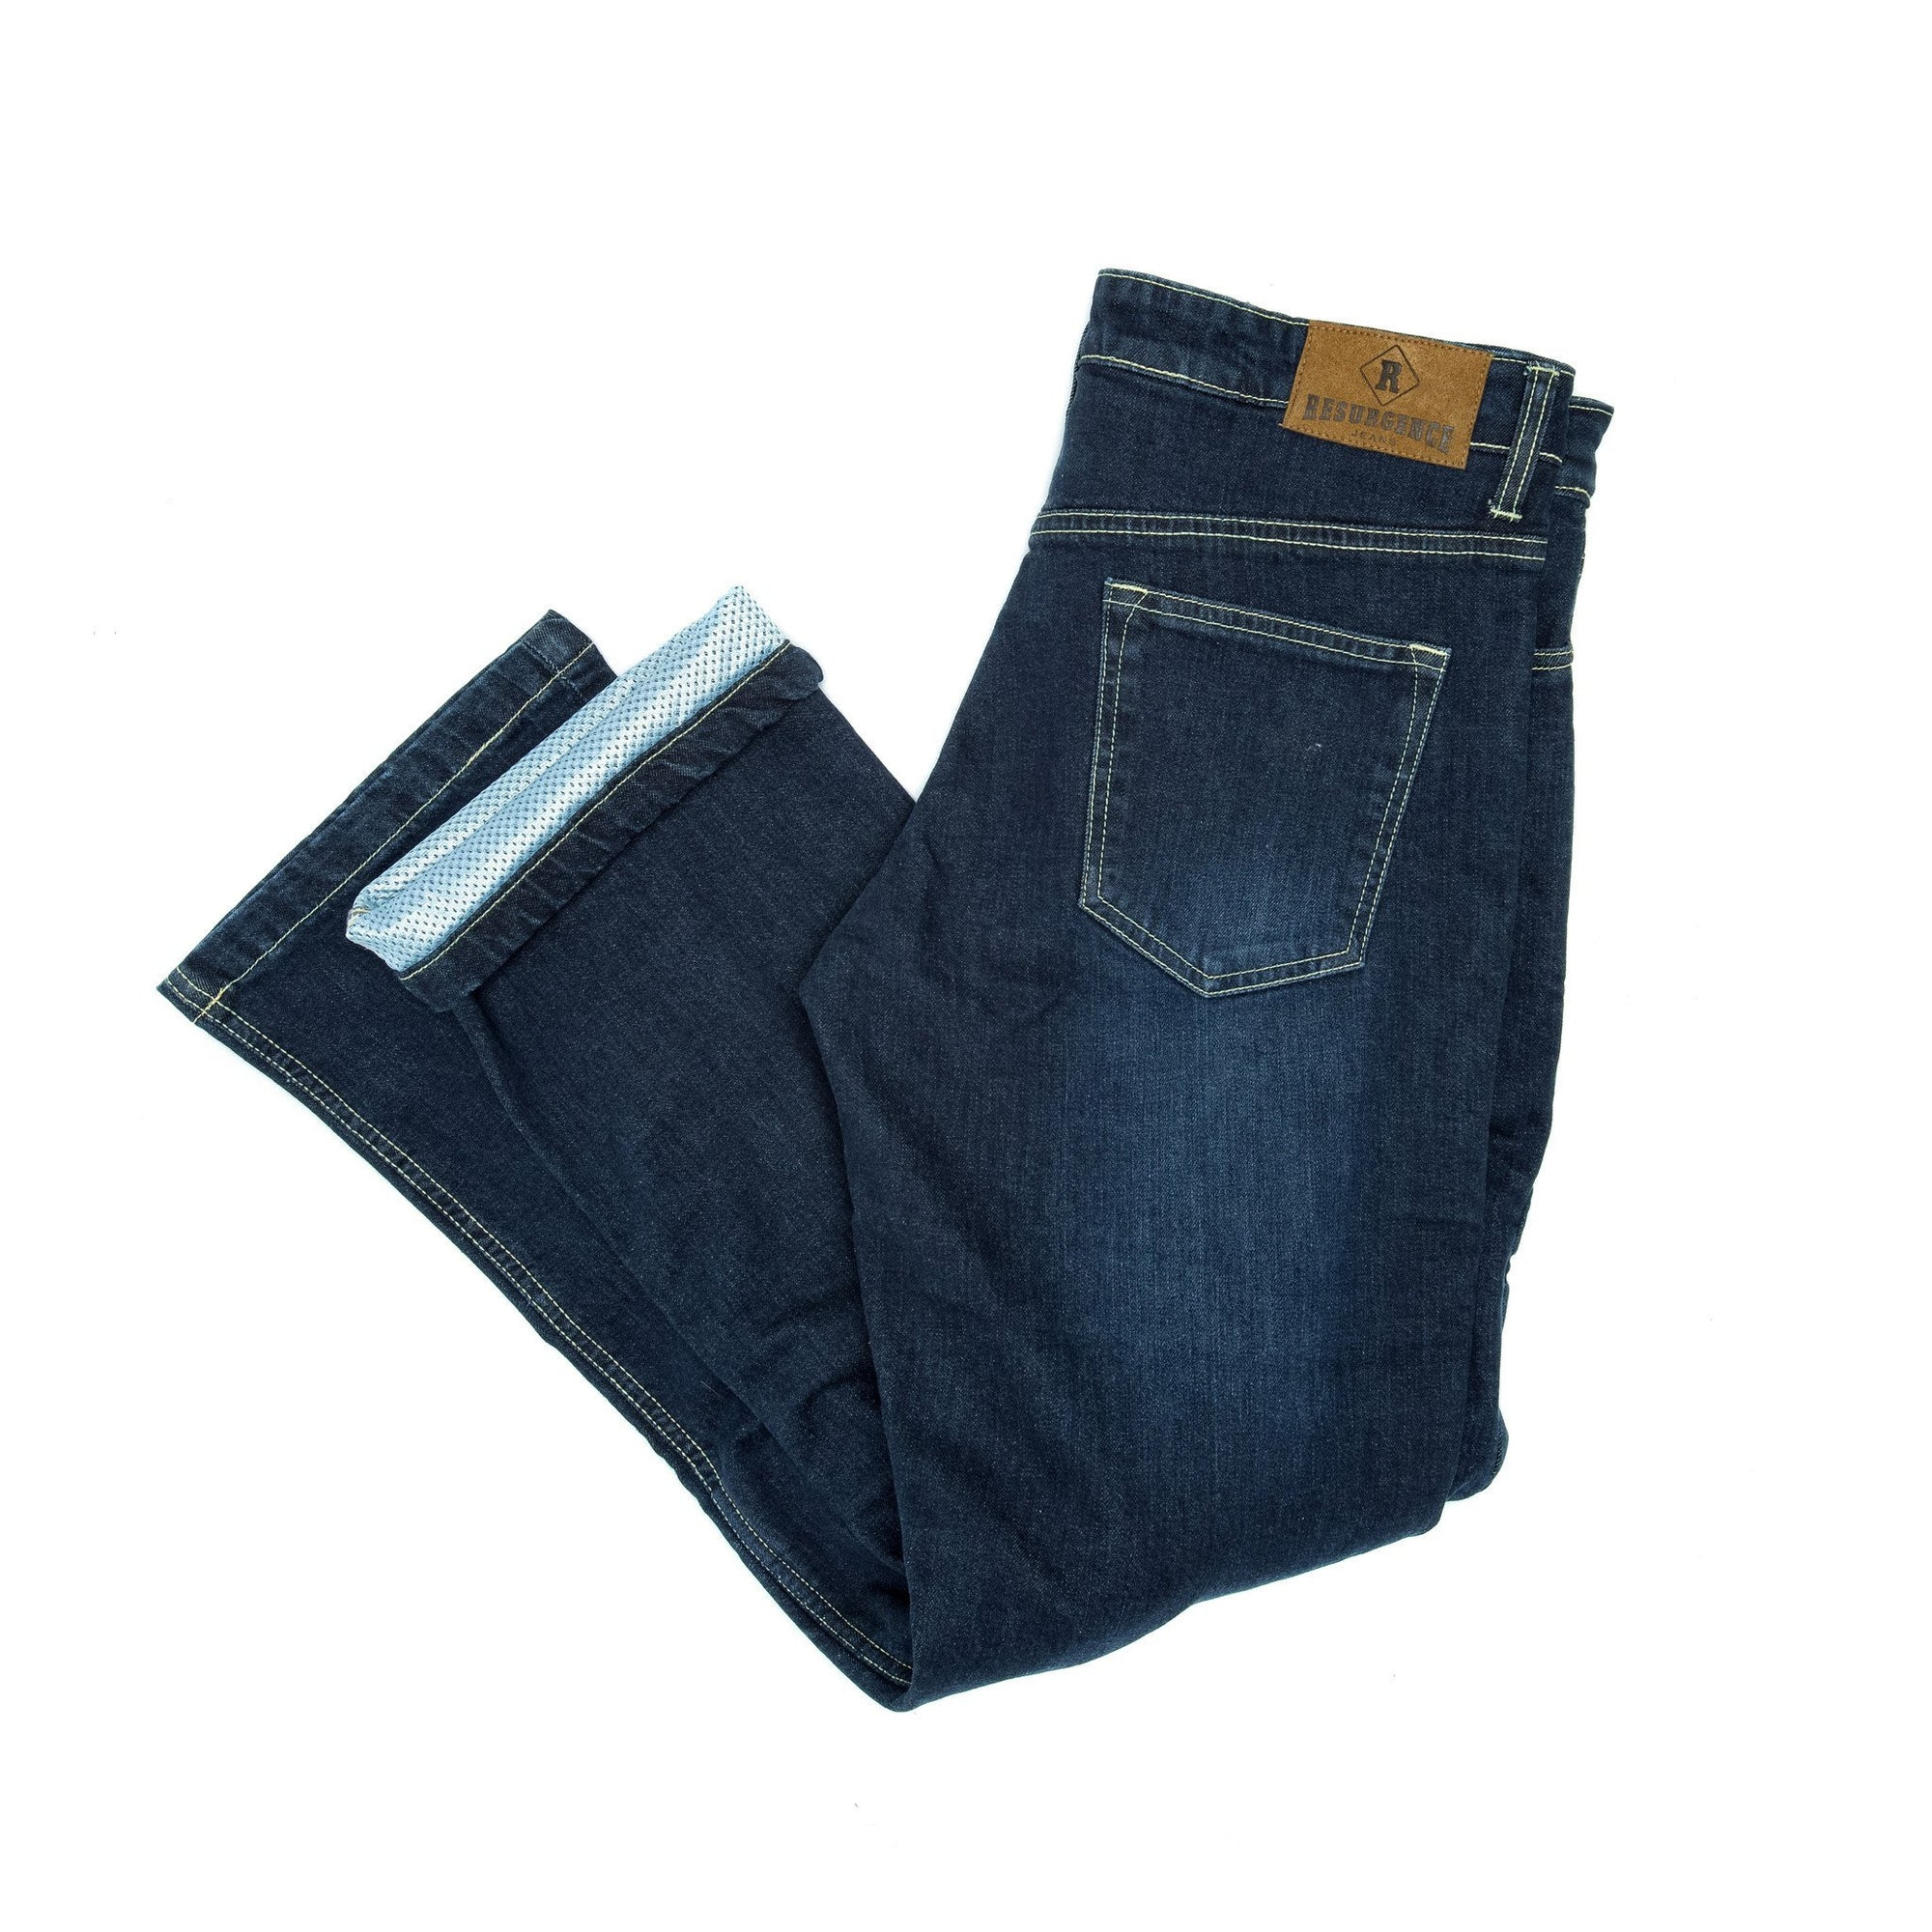 Resurgence Gear Inc. - Resurgence Gear® Voyager PEKEV® Indigo Blue Men's Jeans - Men's Trousers - Salt Flats Clothing